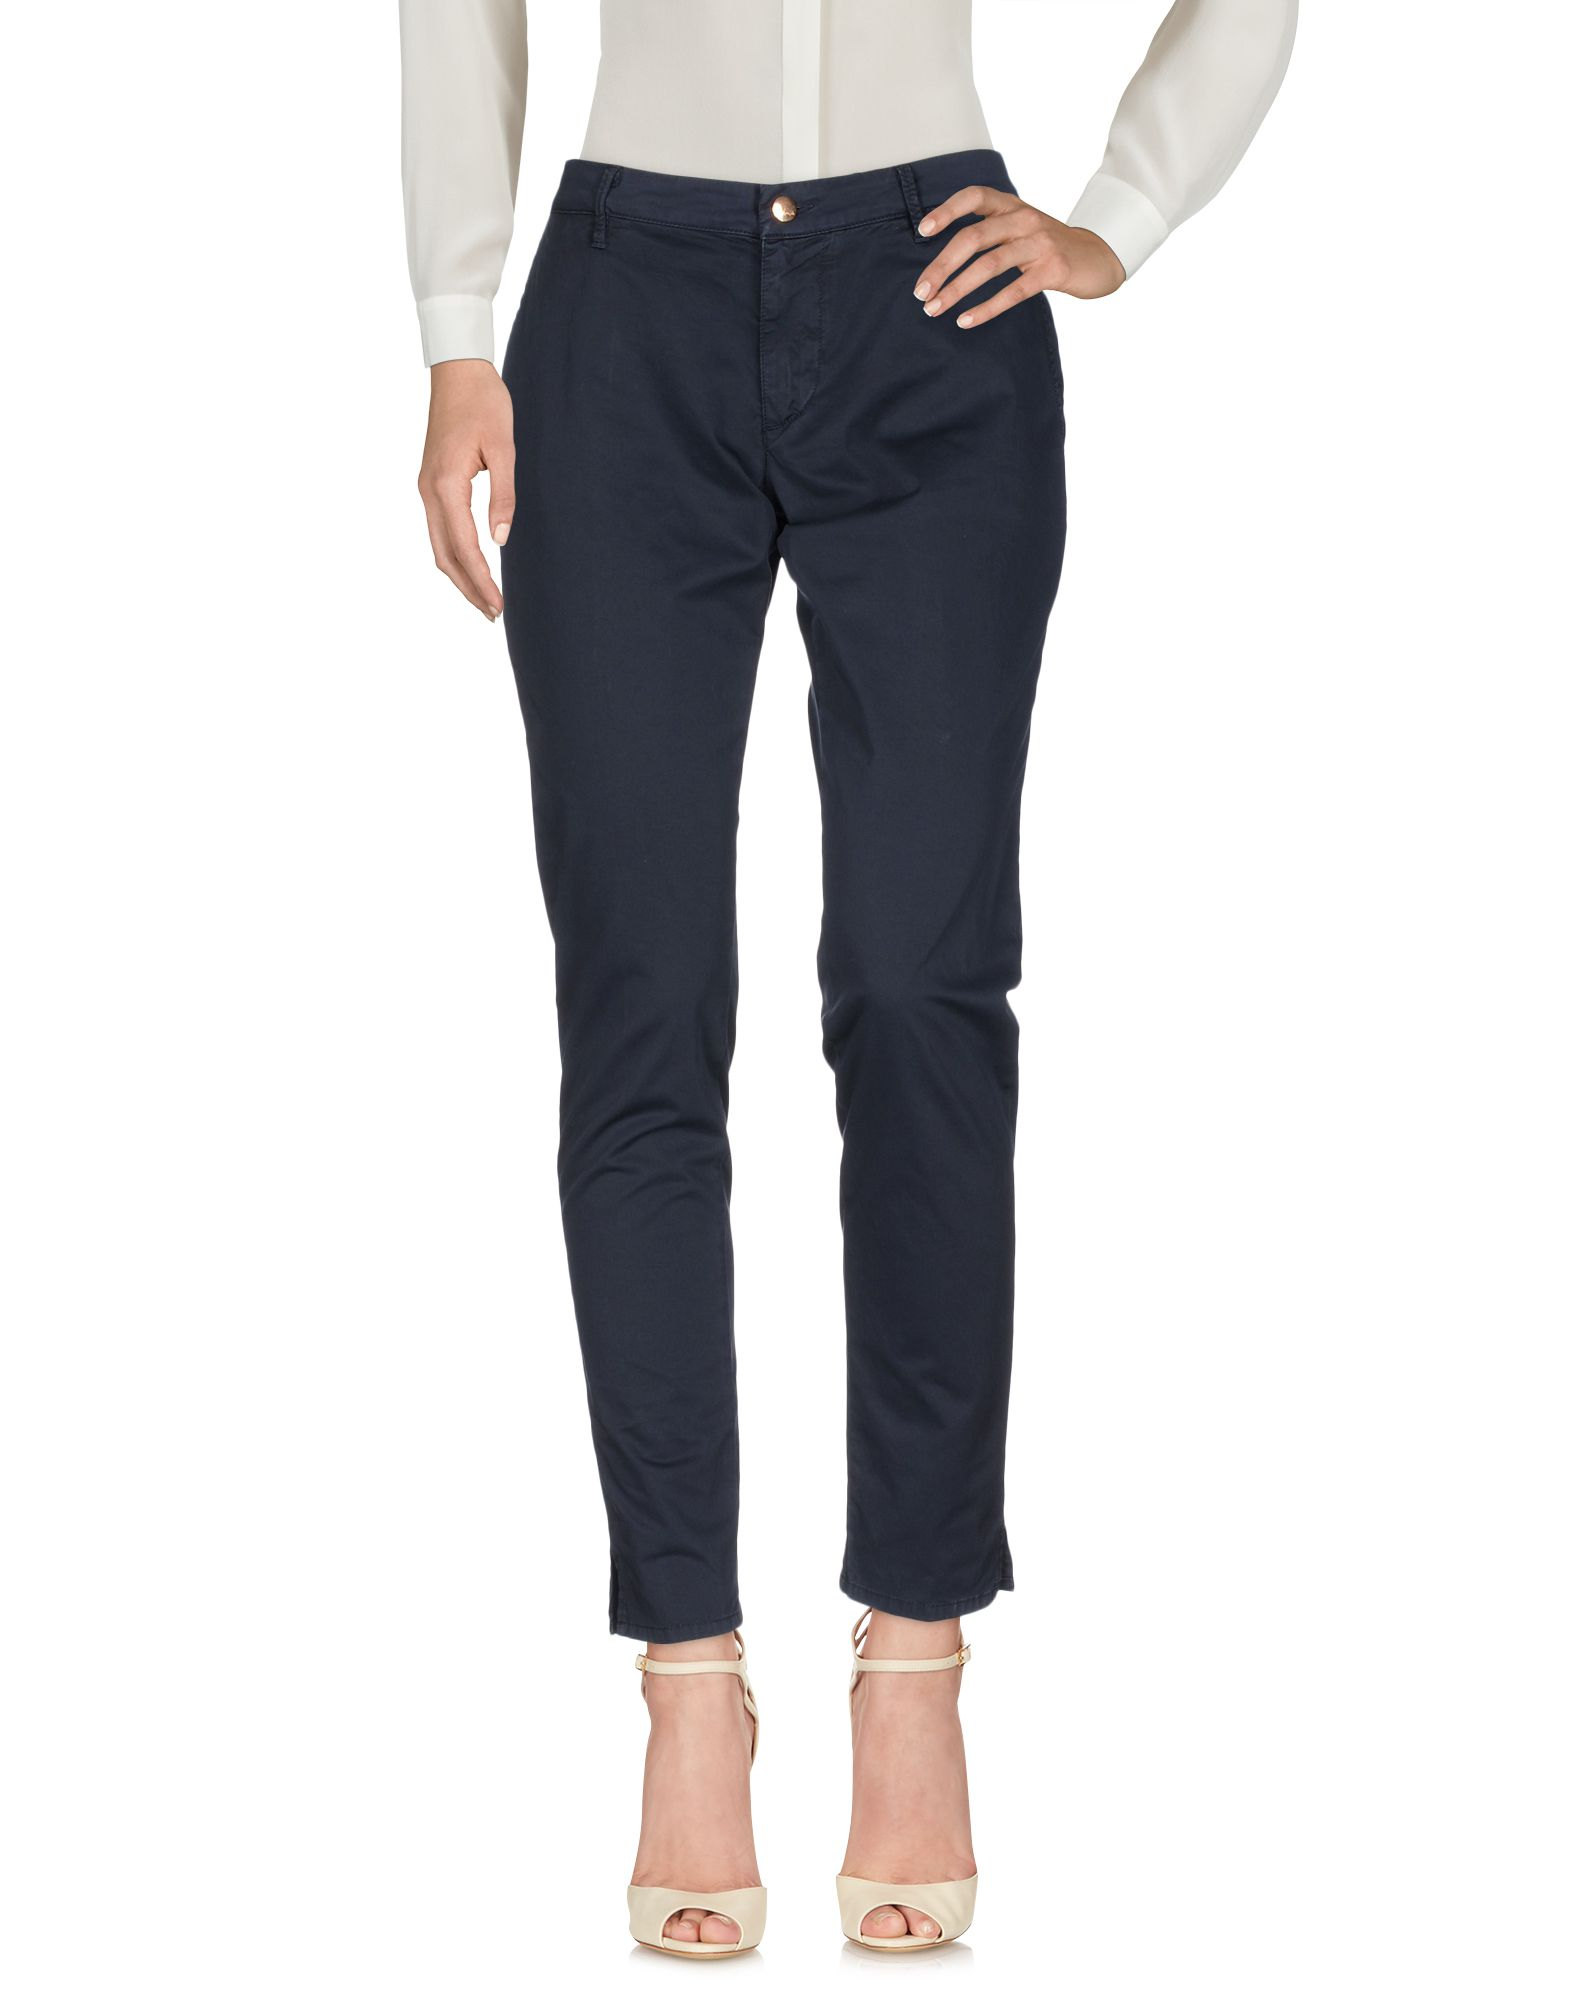 Pantalone (+) People damen - 13105542HS